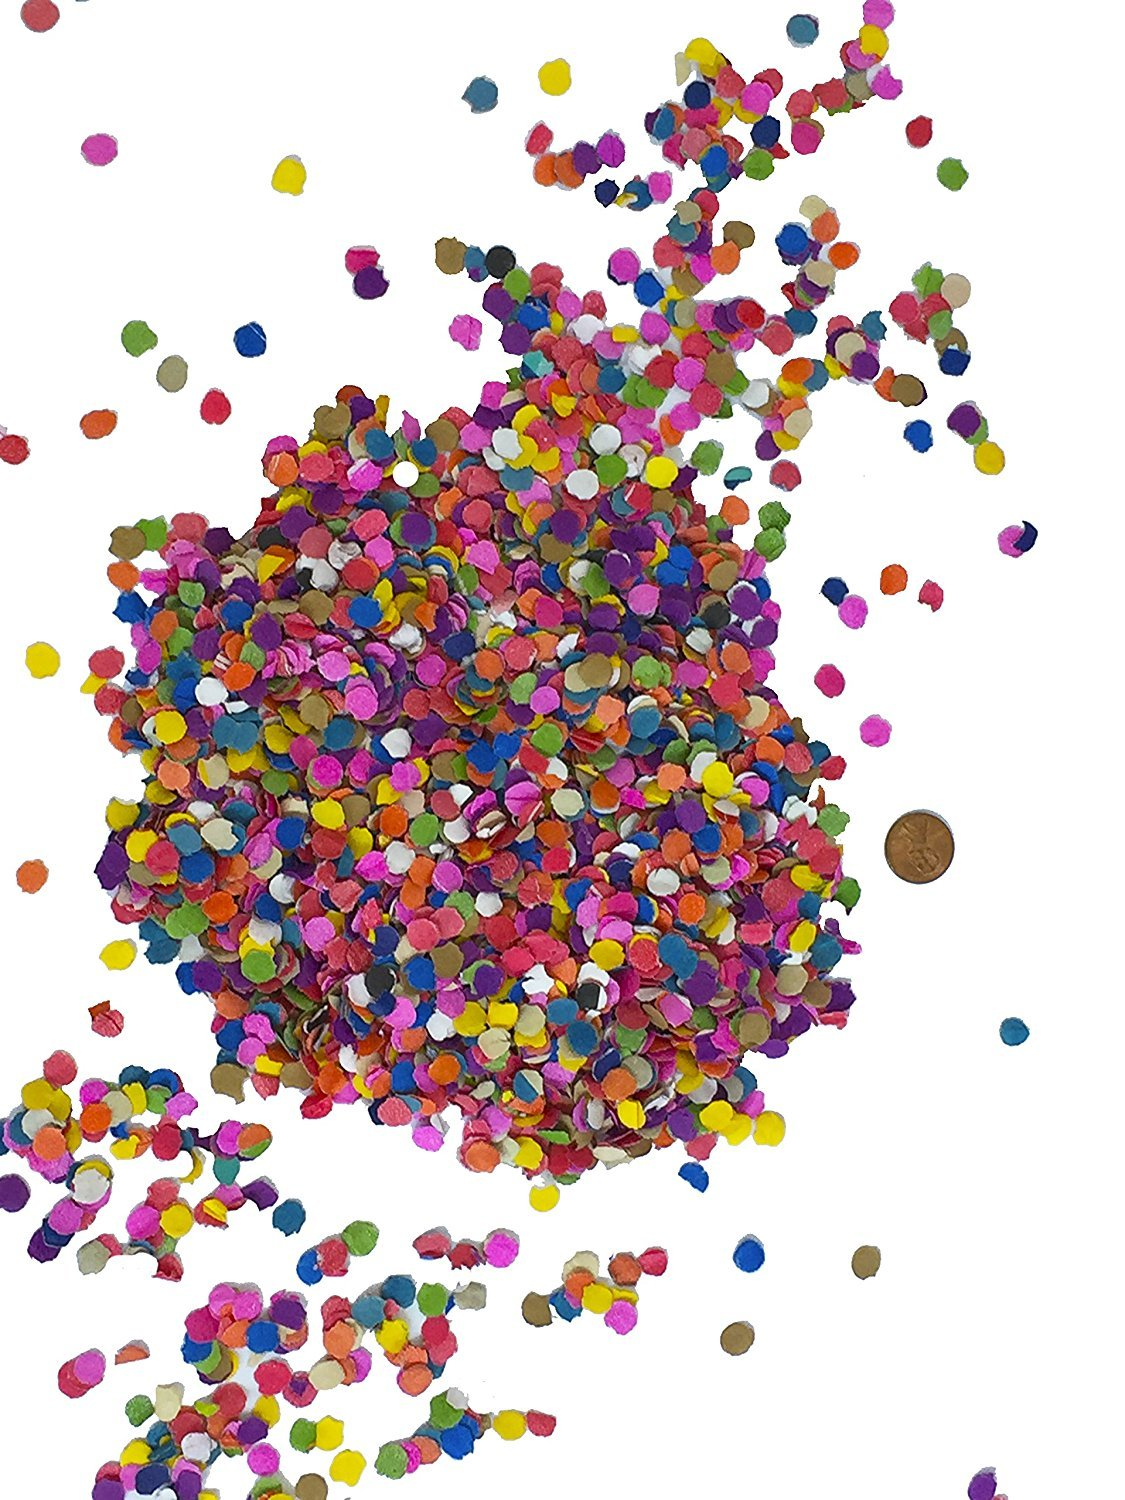 TrendyCommerce Multicolor Mexican Tissue Paper Confetti Toss - MEDIUM Bag (2-PACK) 22 Oz any Party & Celebration